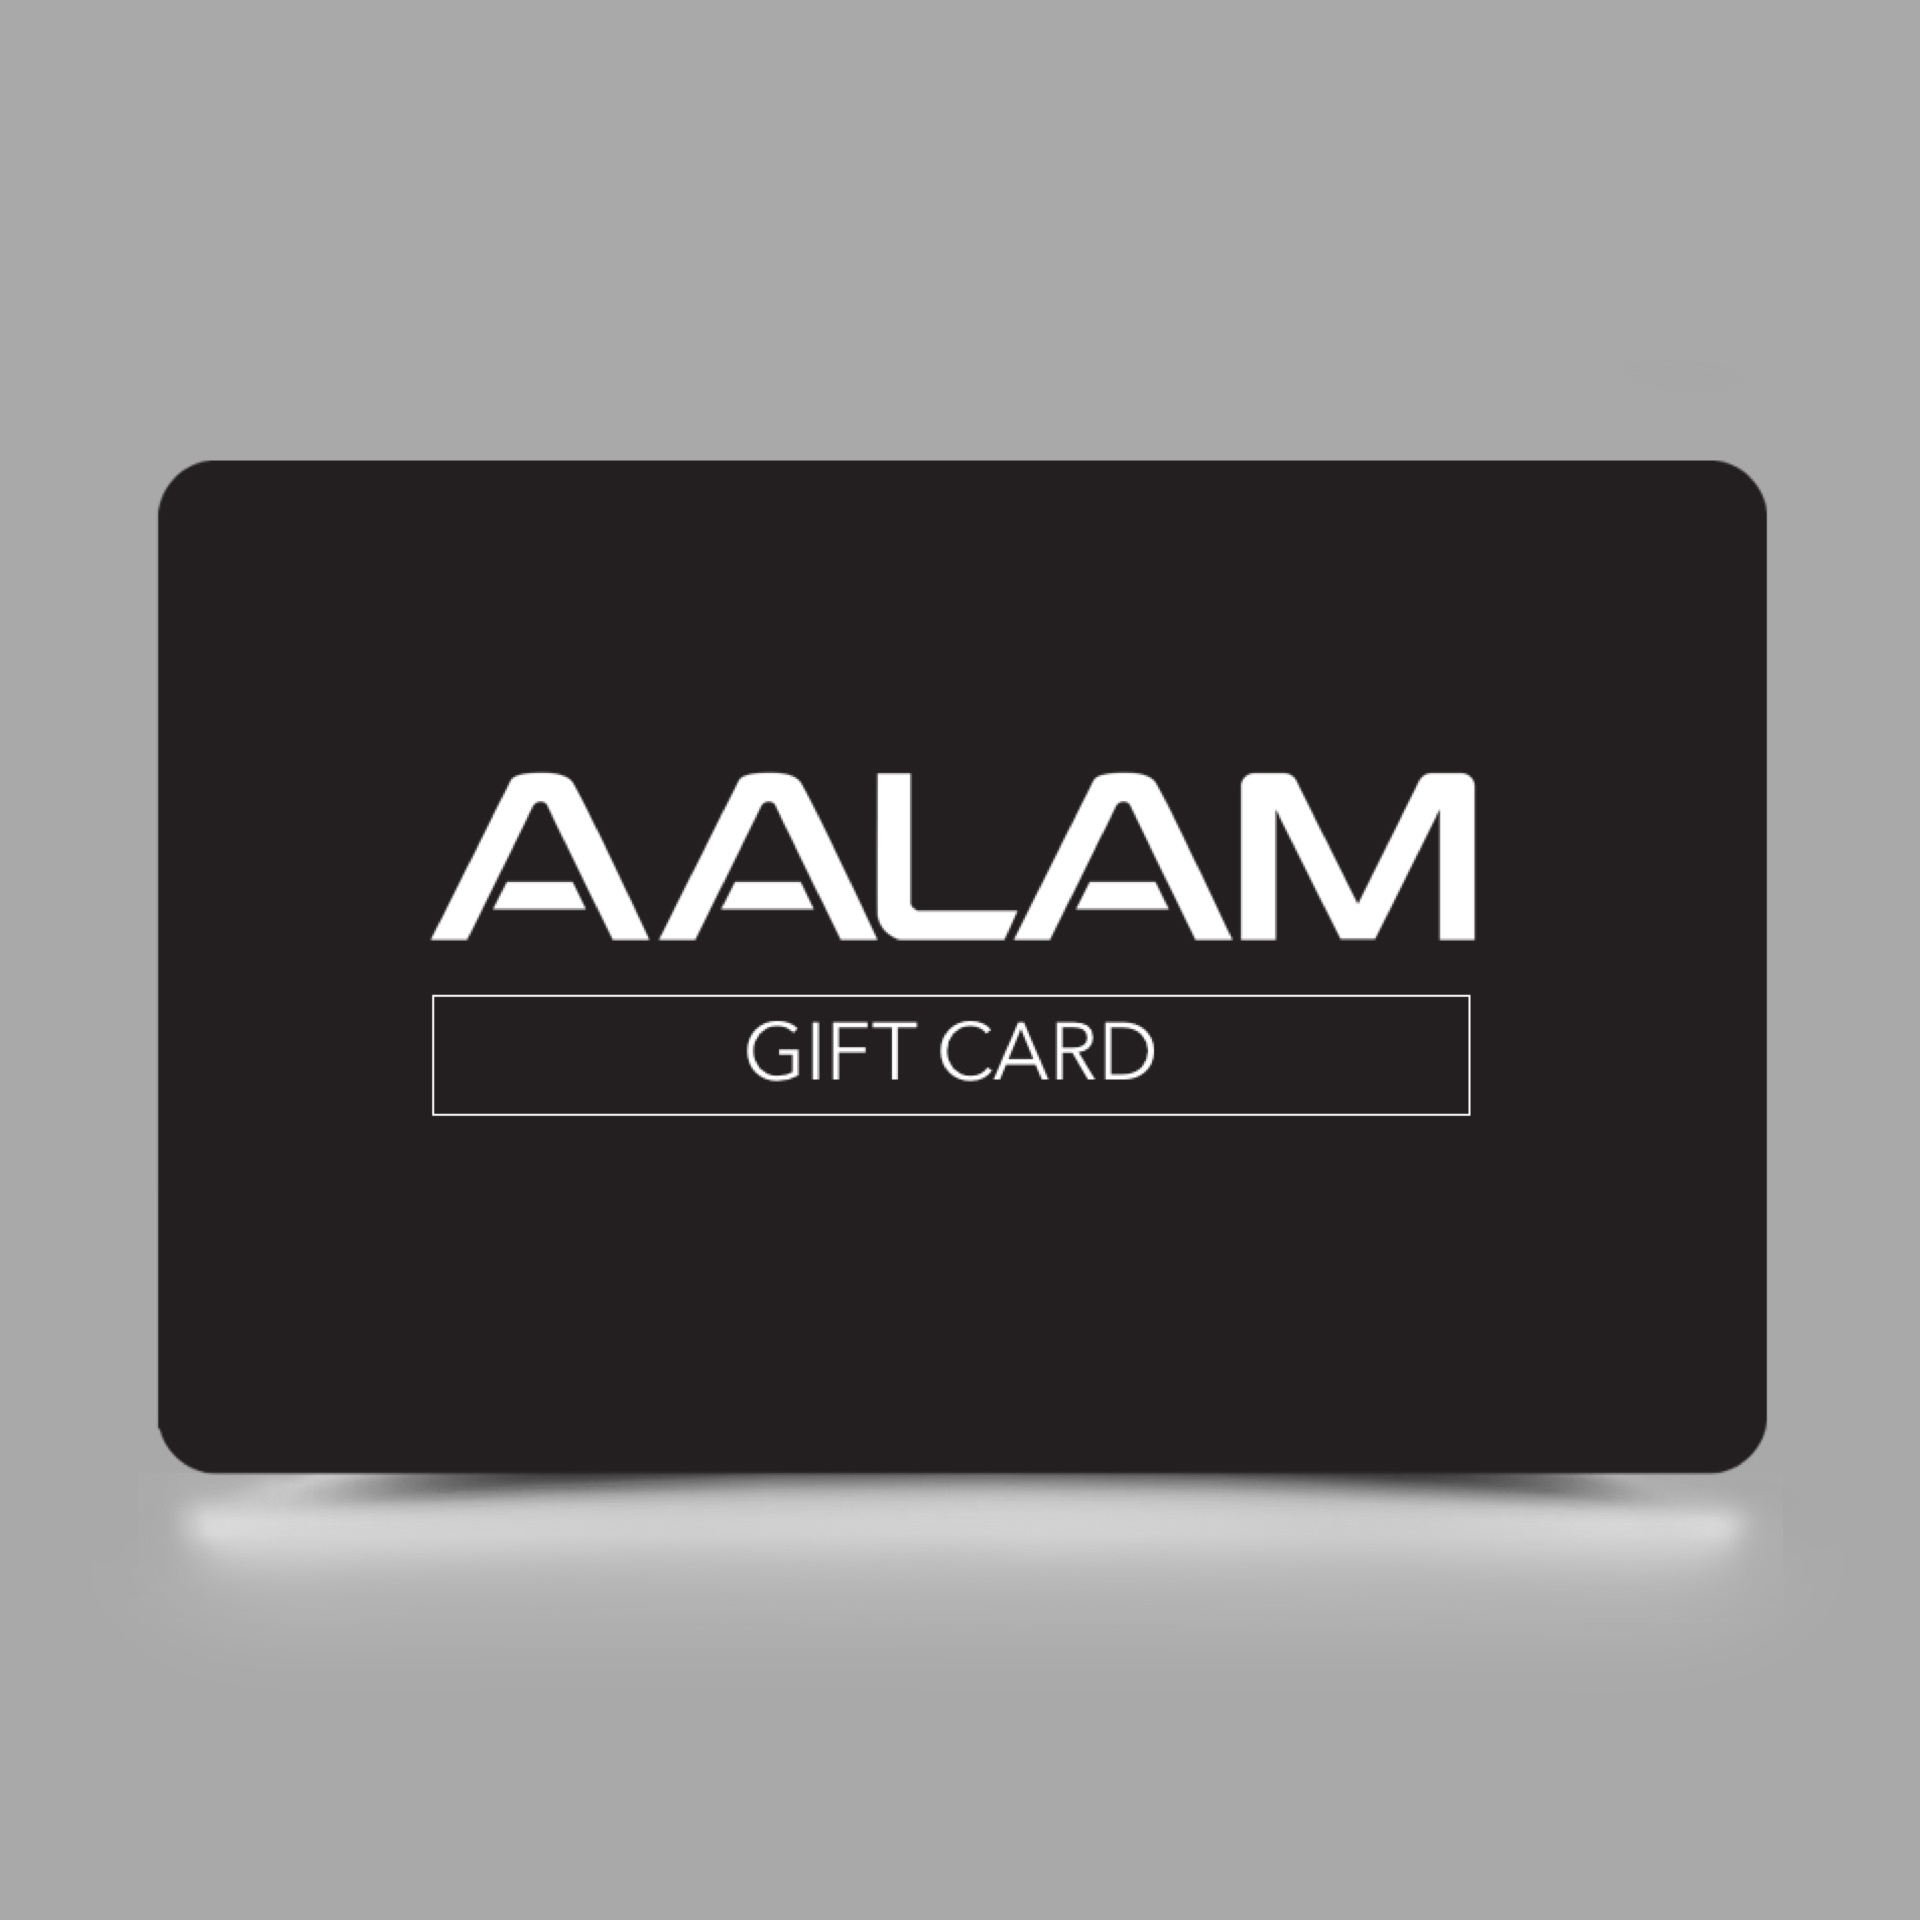 Aalam voted best hair salon plano frisco north dallas for for Best gift cards for men